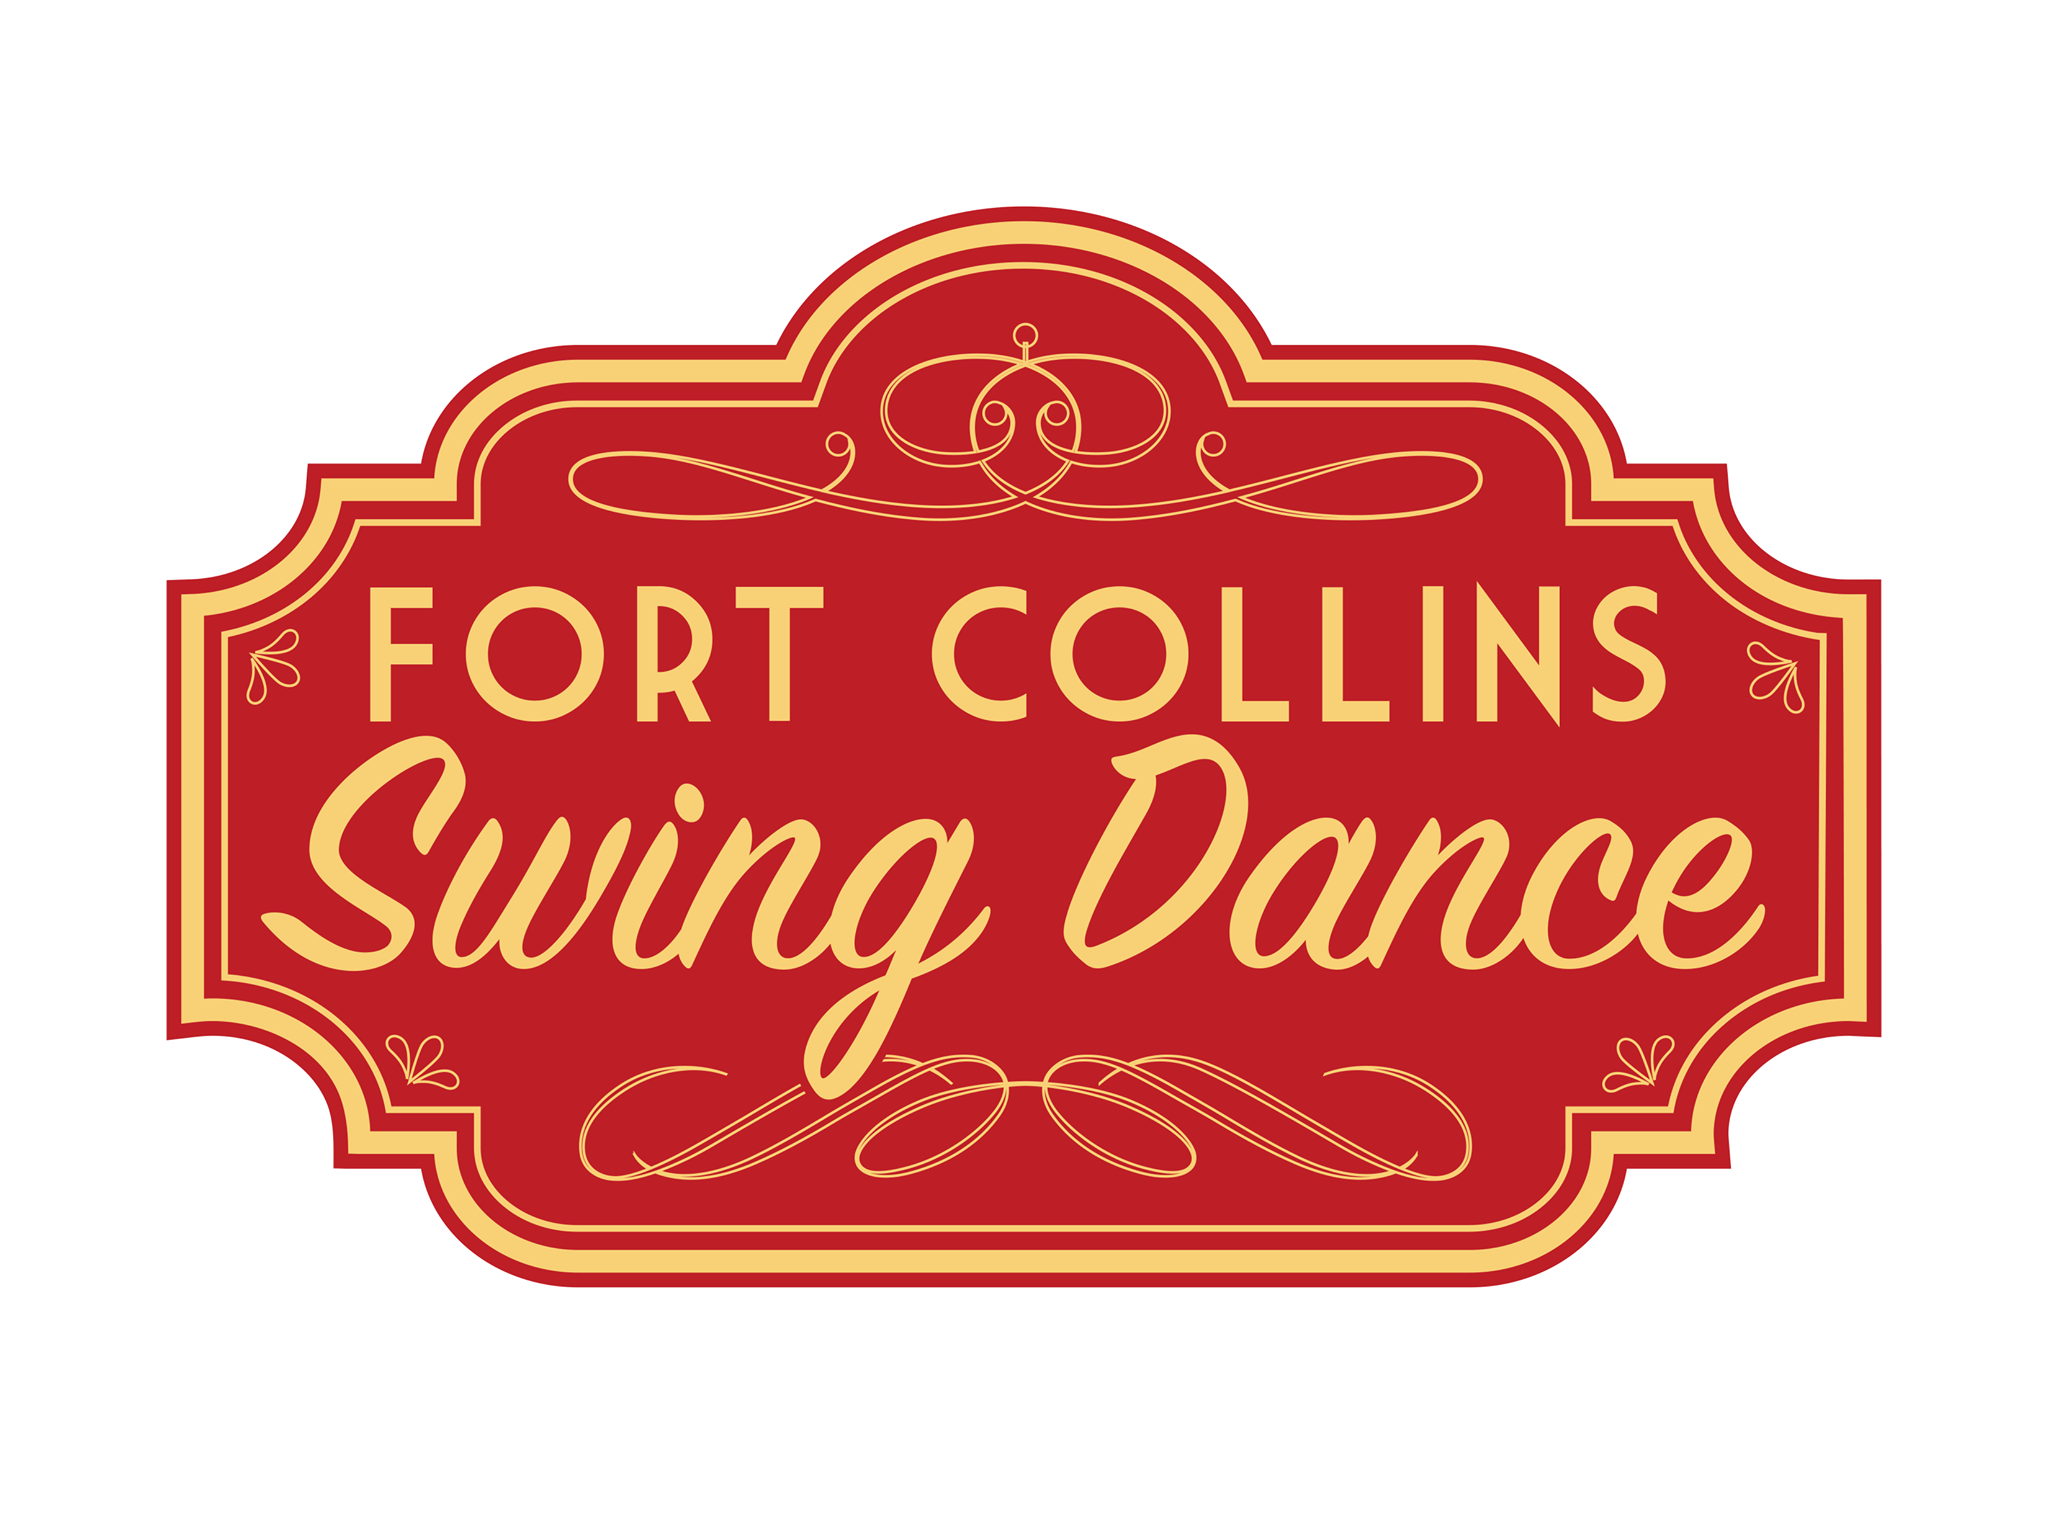 Fort Collins Swing Dance!